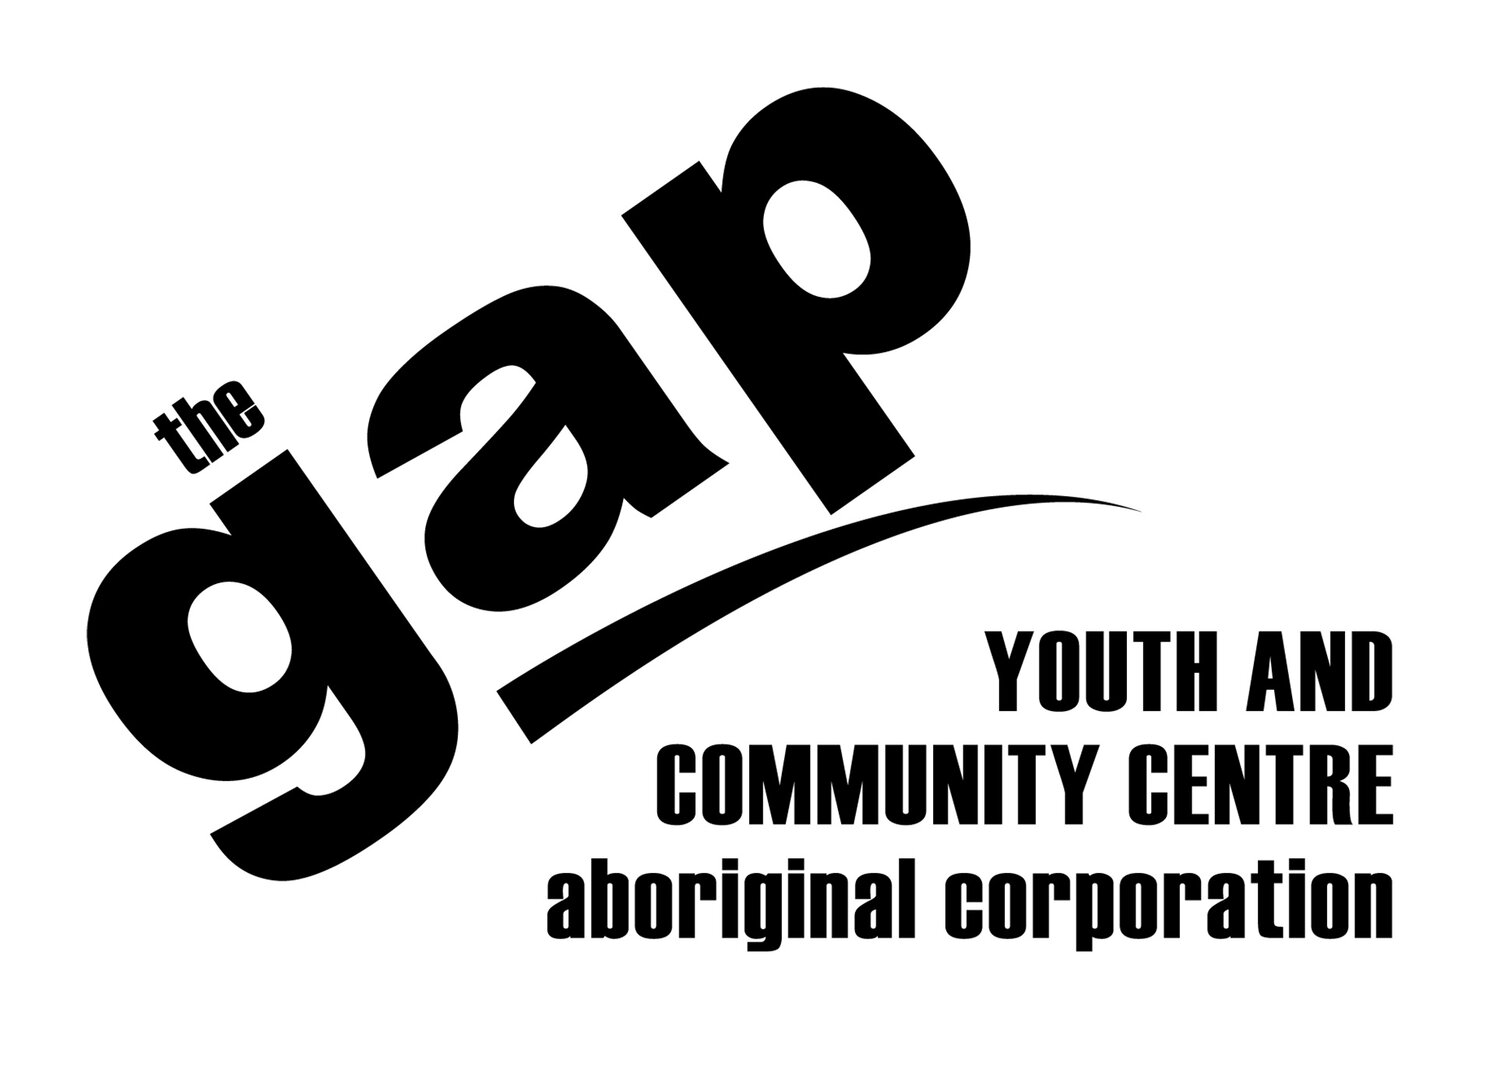 The Gap Youth and Community Centre